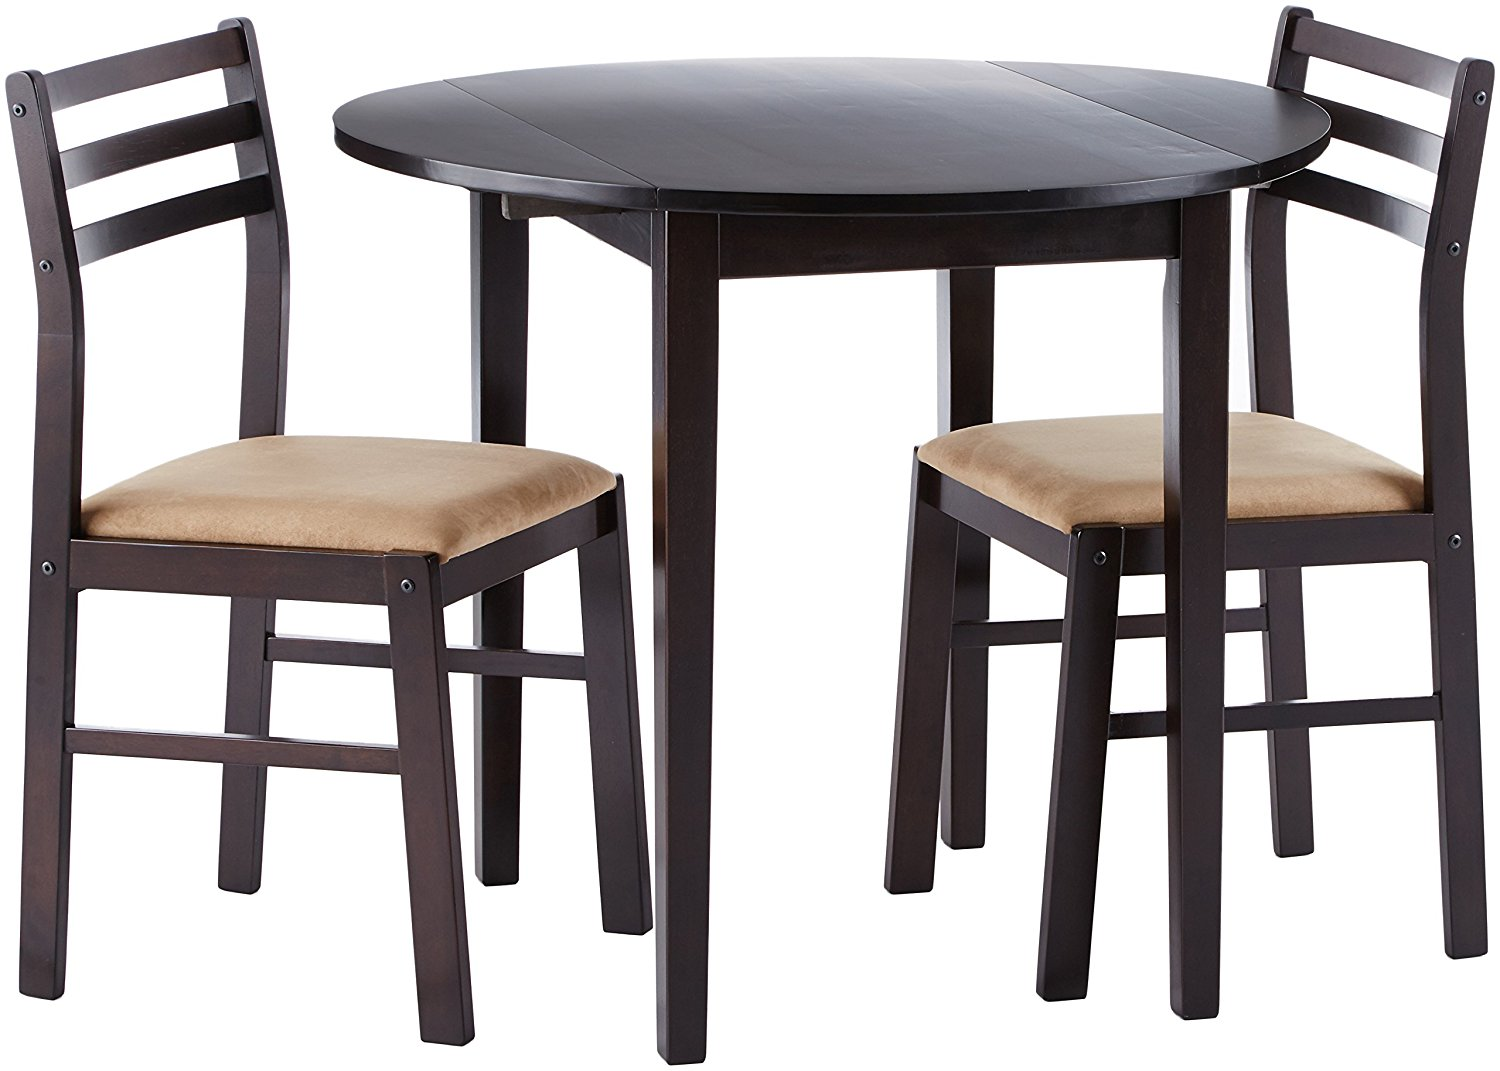 Picture of: Counter Wooden Dining Table Chairs Set Breakfast Nook Or Small Dining Space Furniture Buy Folding Table Home Garden Dining Table Set Product On Alibaba Com